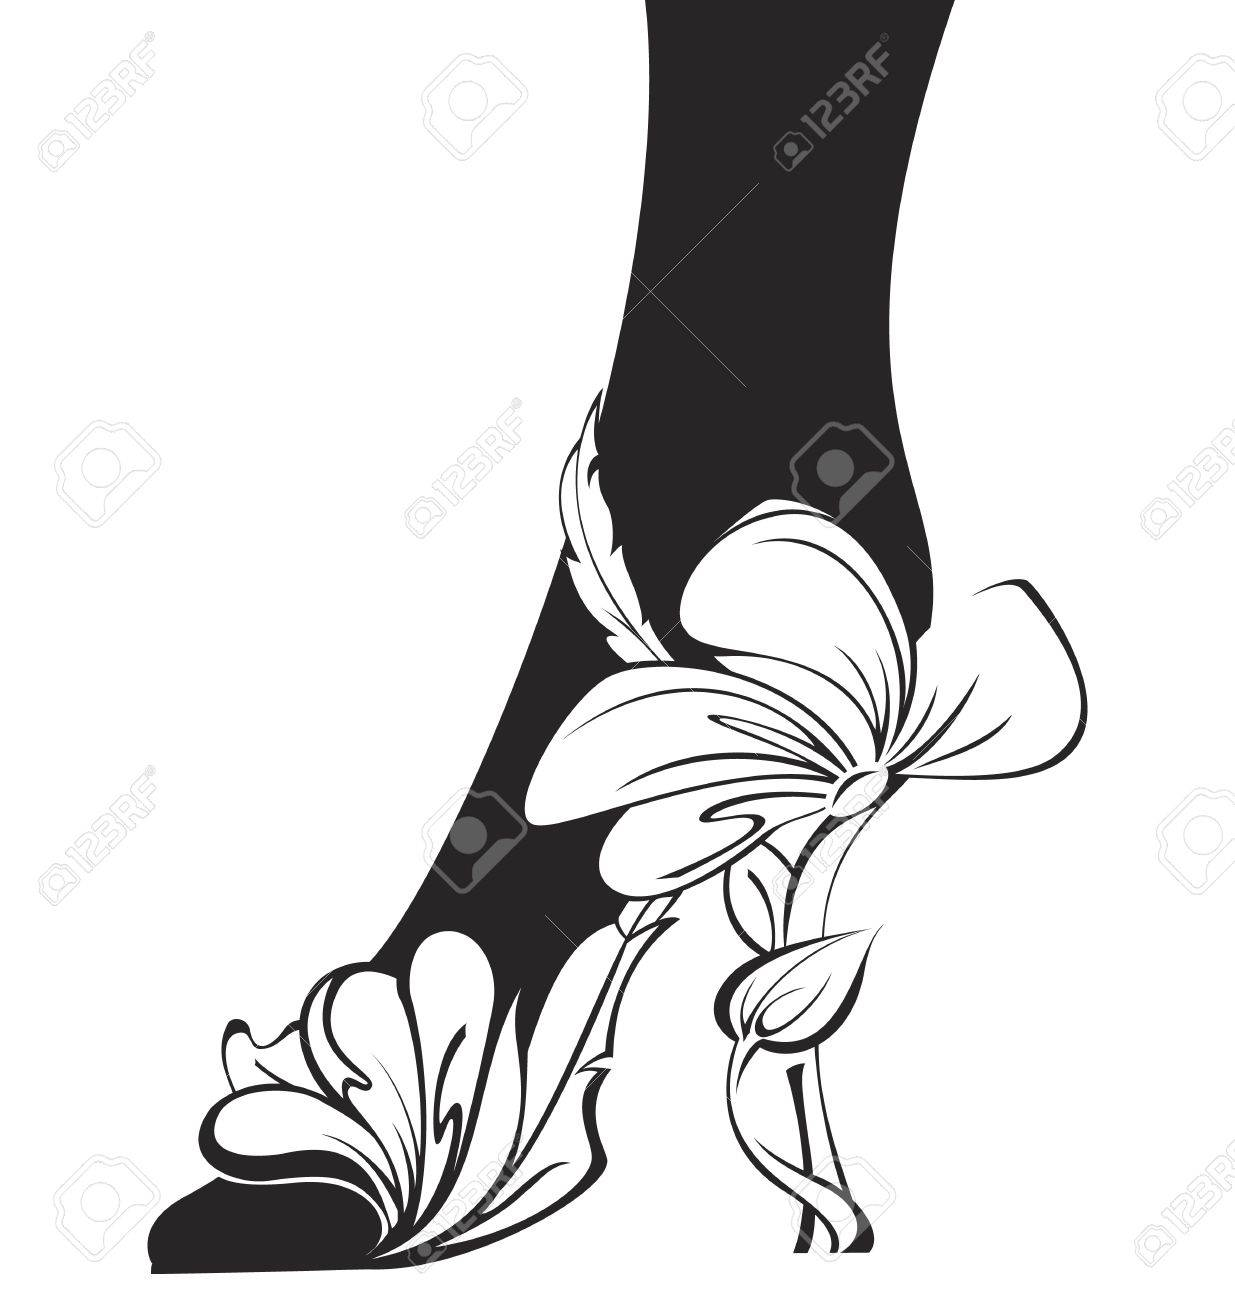 Black and white contour eco shoe  illustration Stock Vector - 14579145